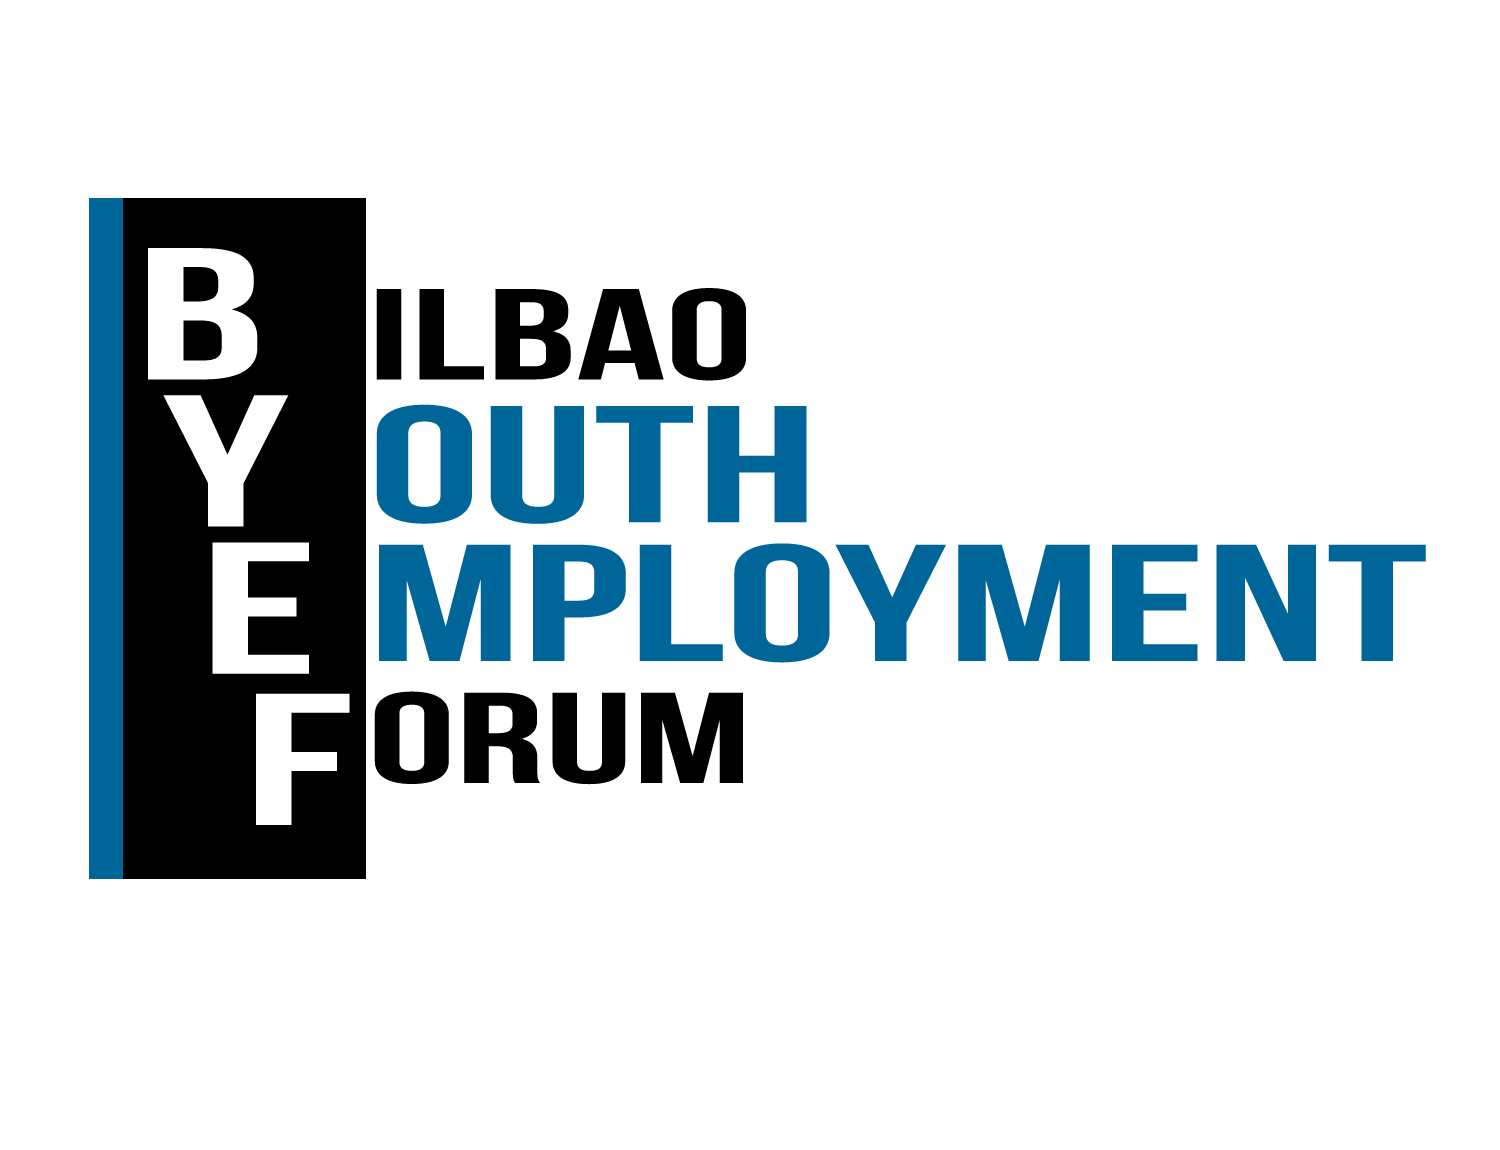 byef - Bilbao youth employment forum